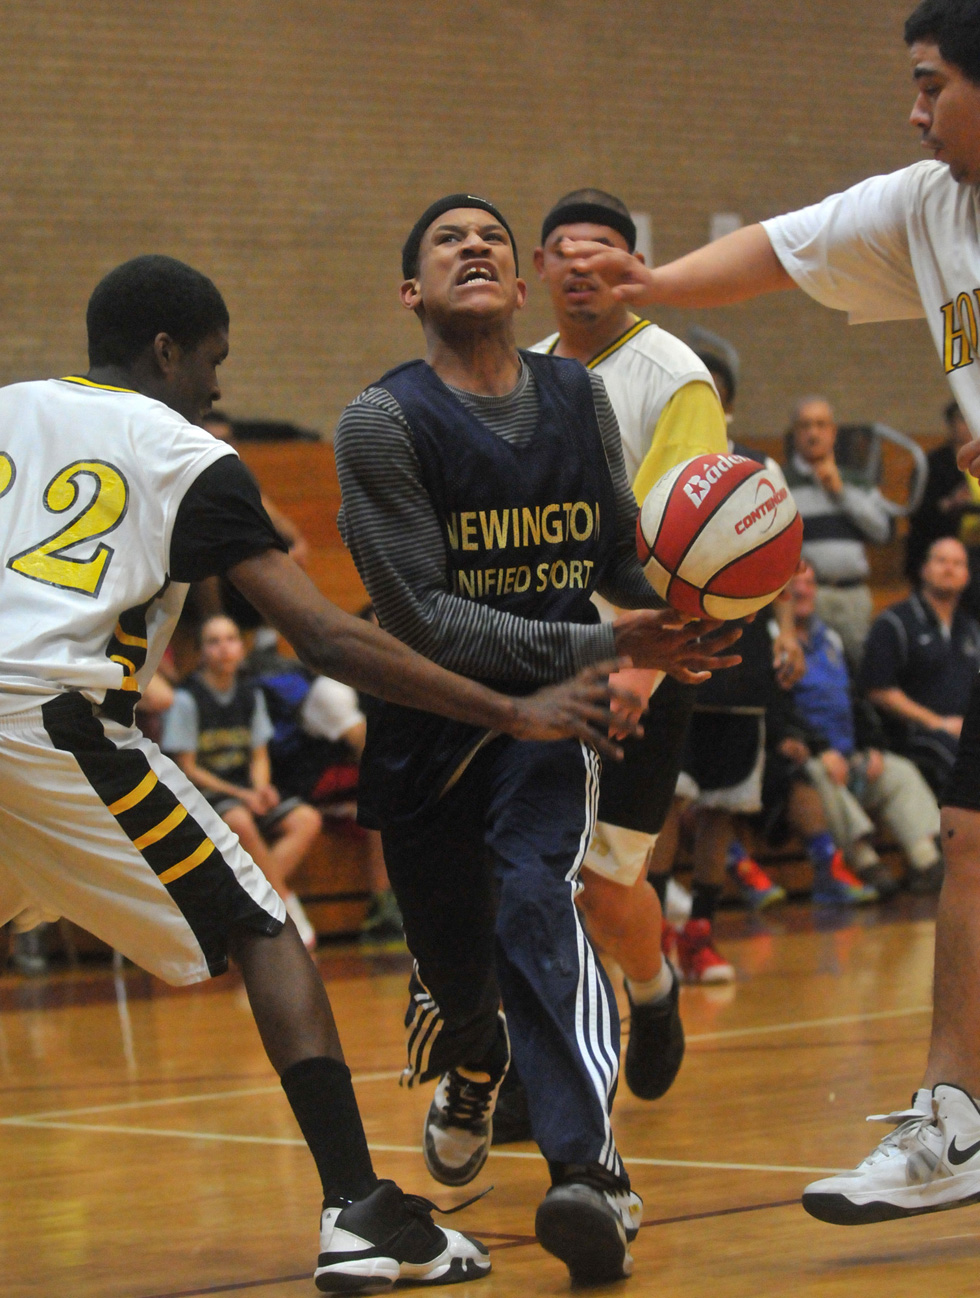 Newington Unified Basketball team's Markiet Cameron drives to the basket against the East Hartford Unified team during the Division 2 Unified State Basketball Championship at Windsor High School Friday, March 1, 2013.  BRAD HORRIGAN | bhorrigan@courant.com